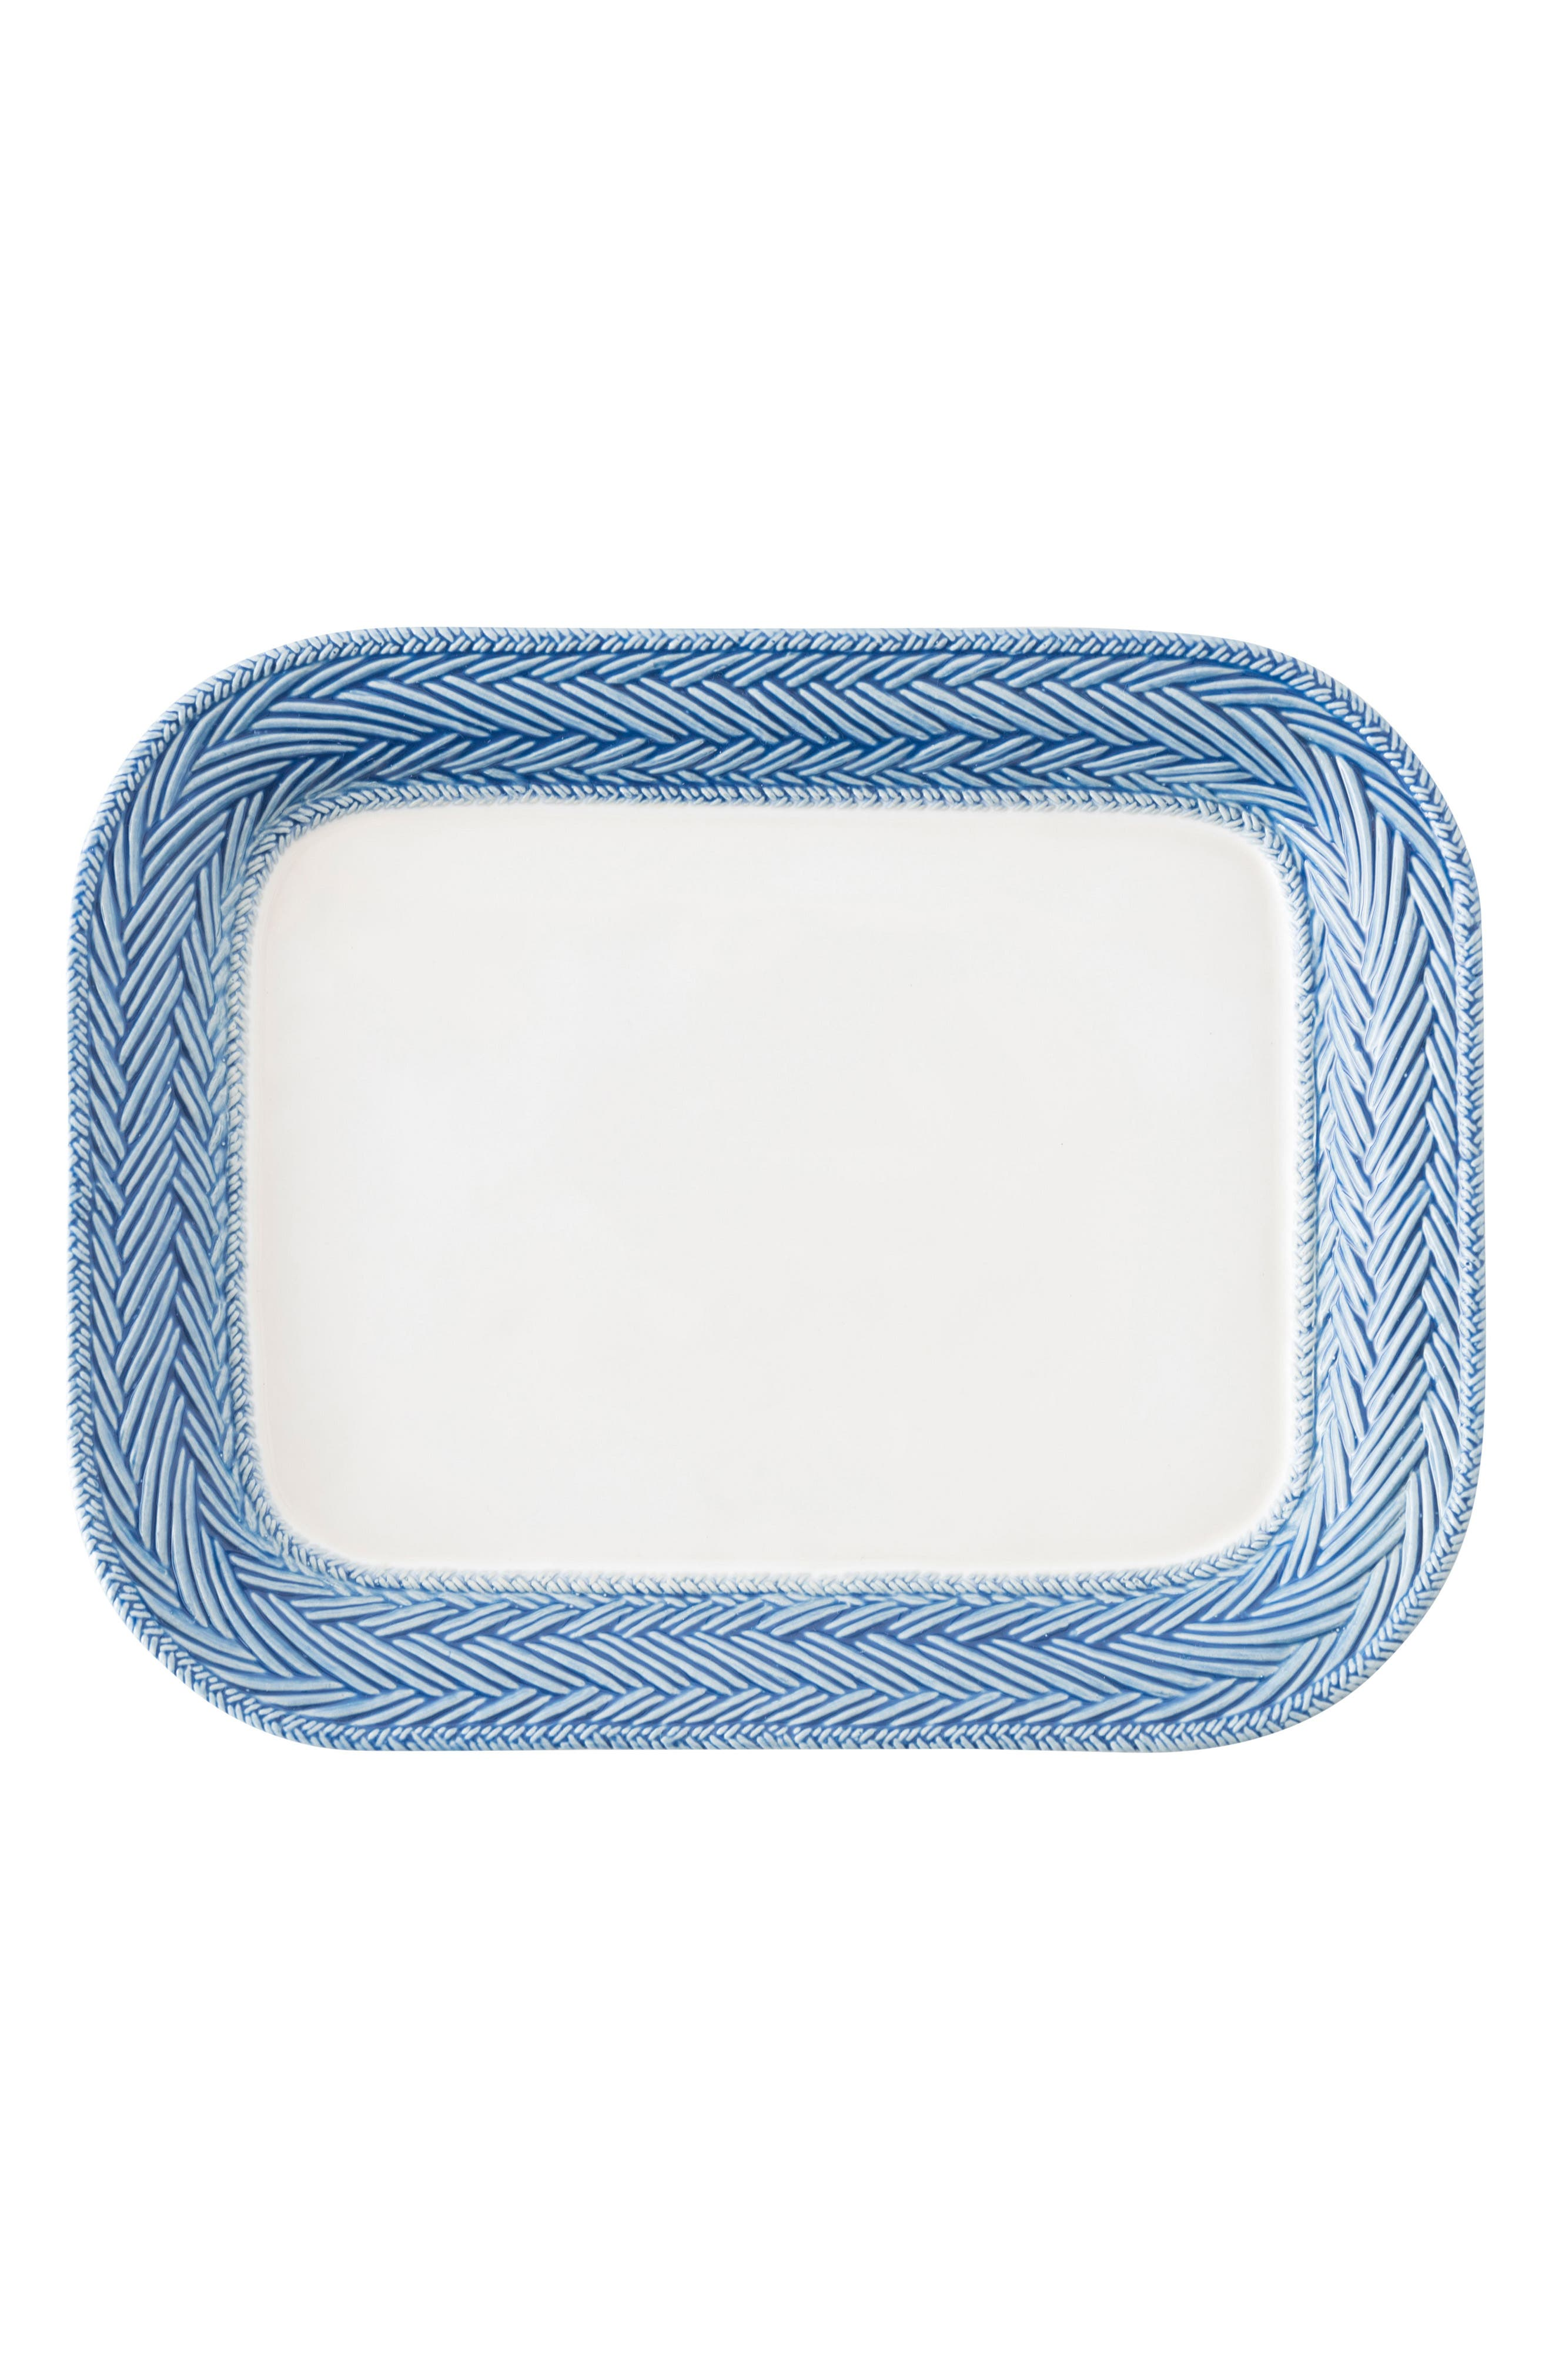 Le Panier Serving Platter,                             Main thumbnail 1, color,                             WHITEWASH/ DELFT BLUE